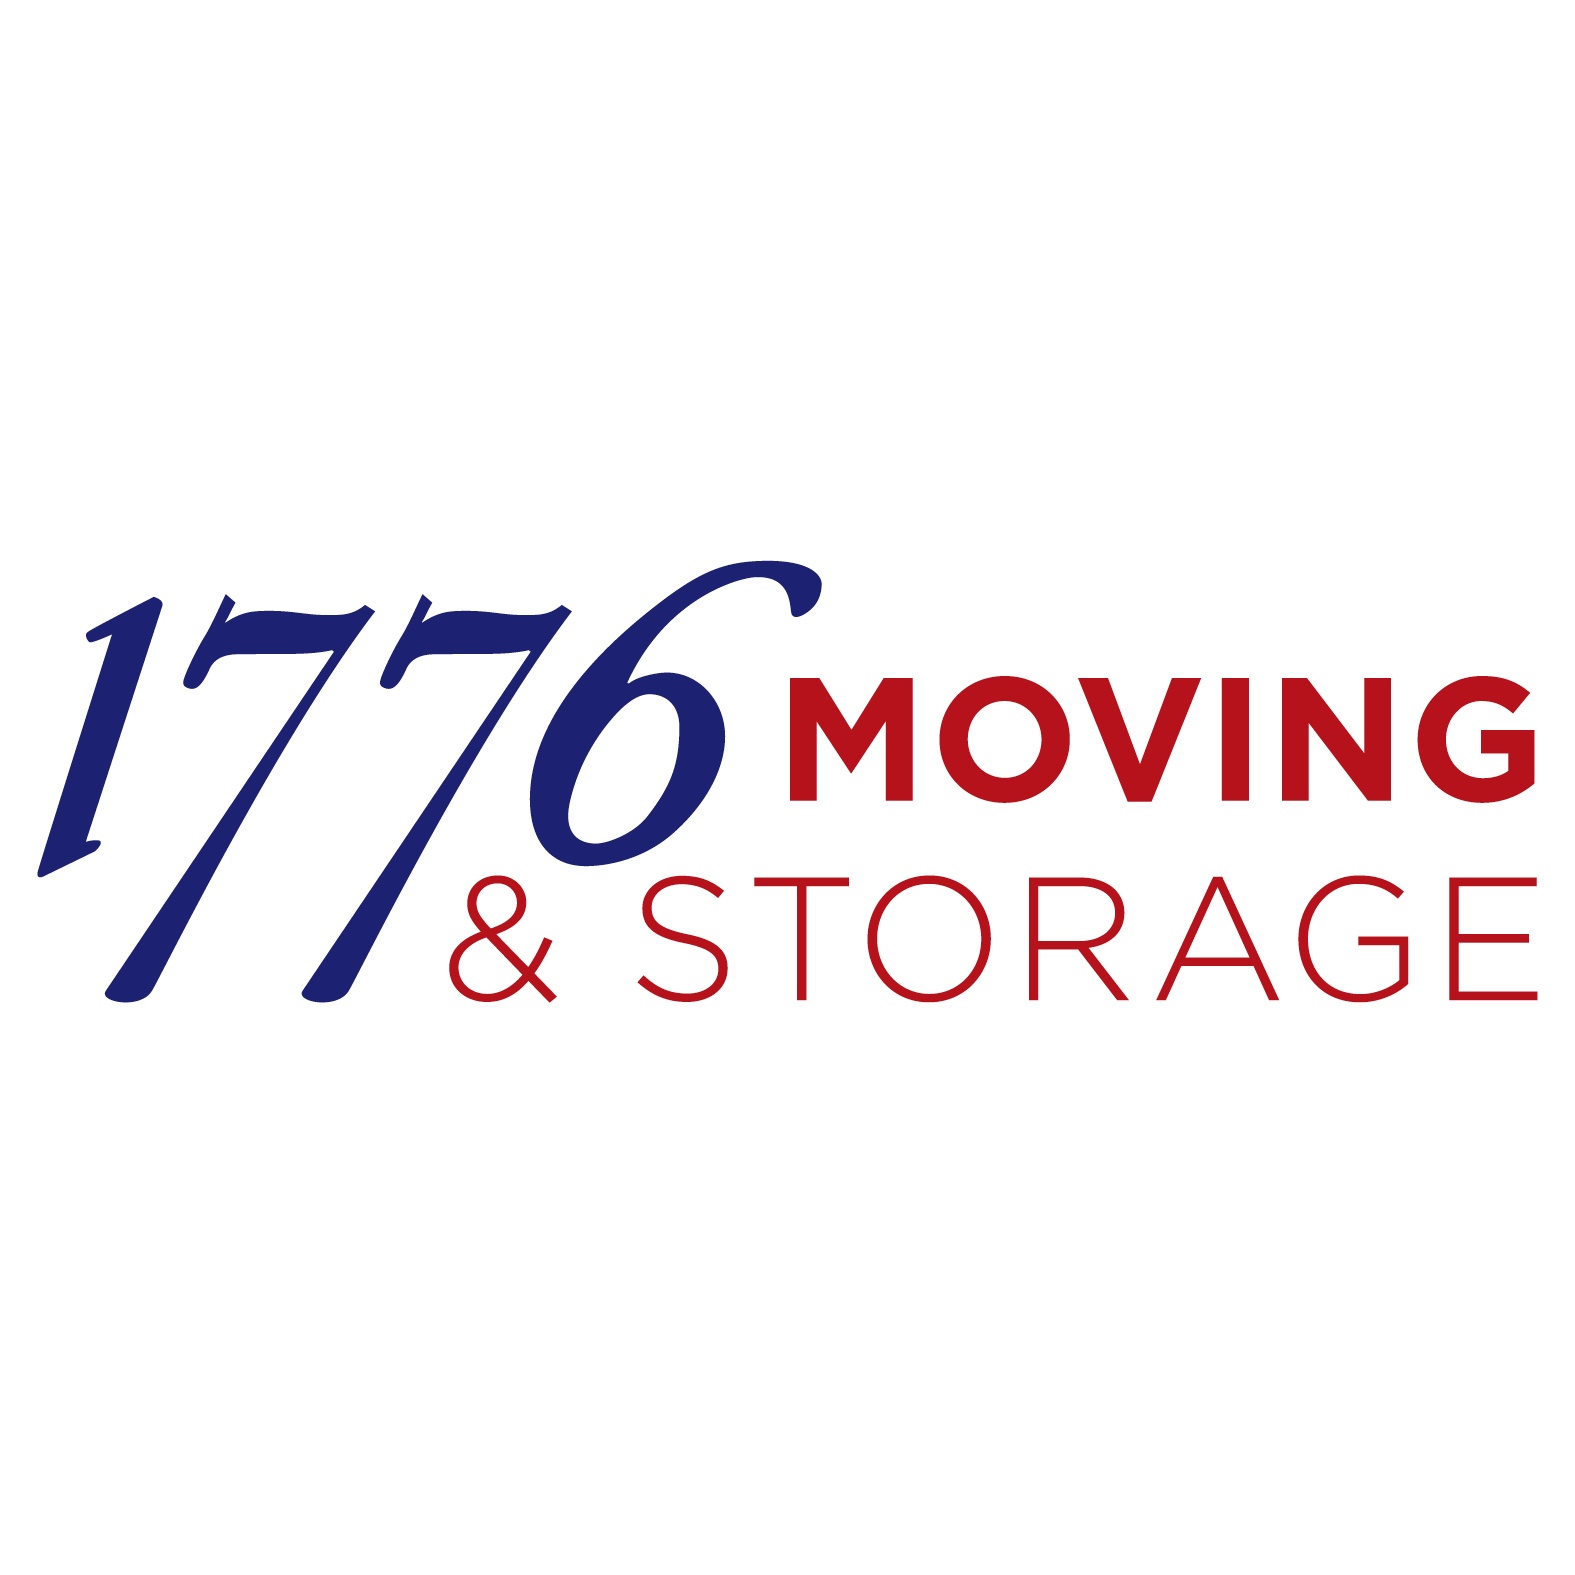 1776 Moving and Storage, Inc